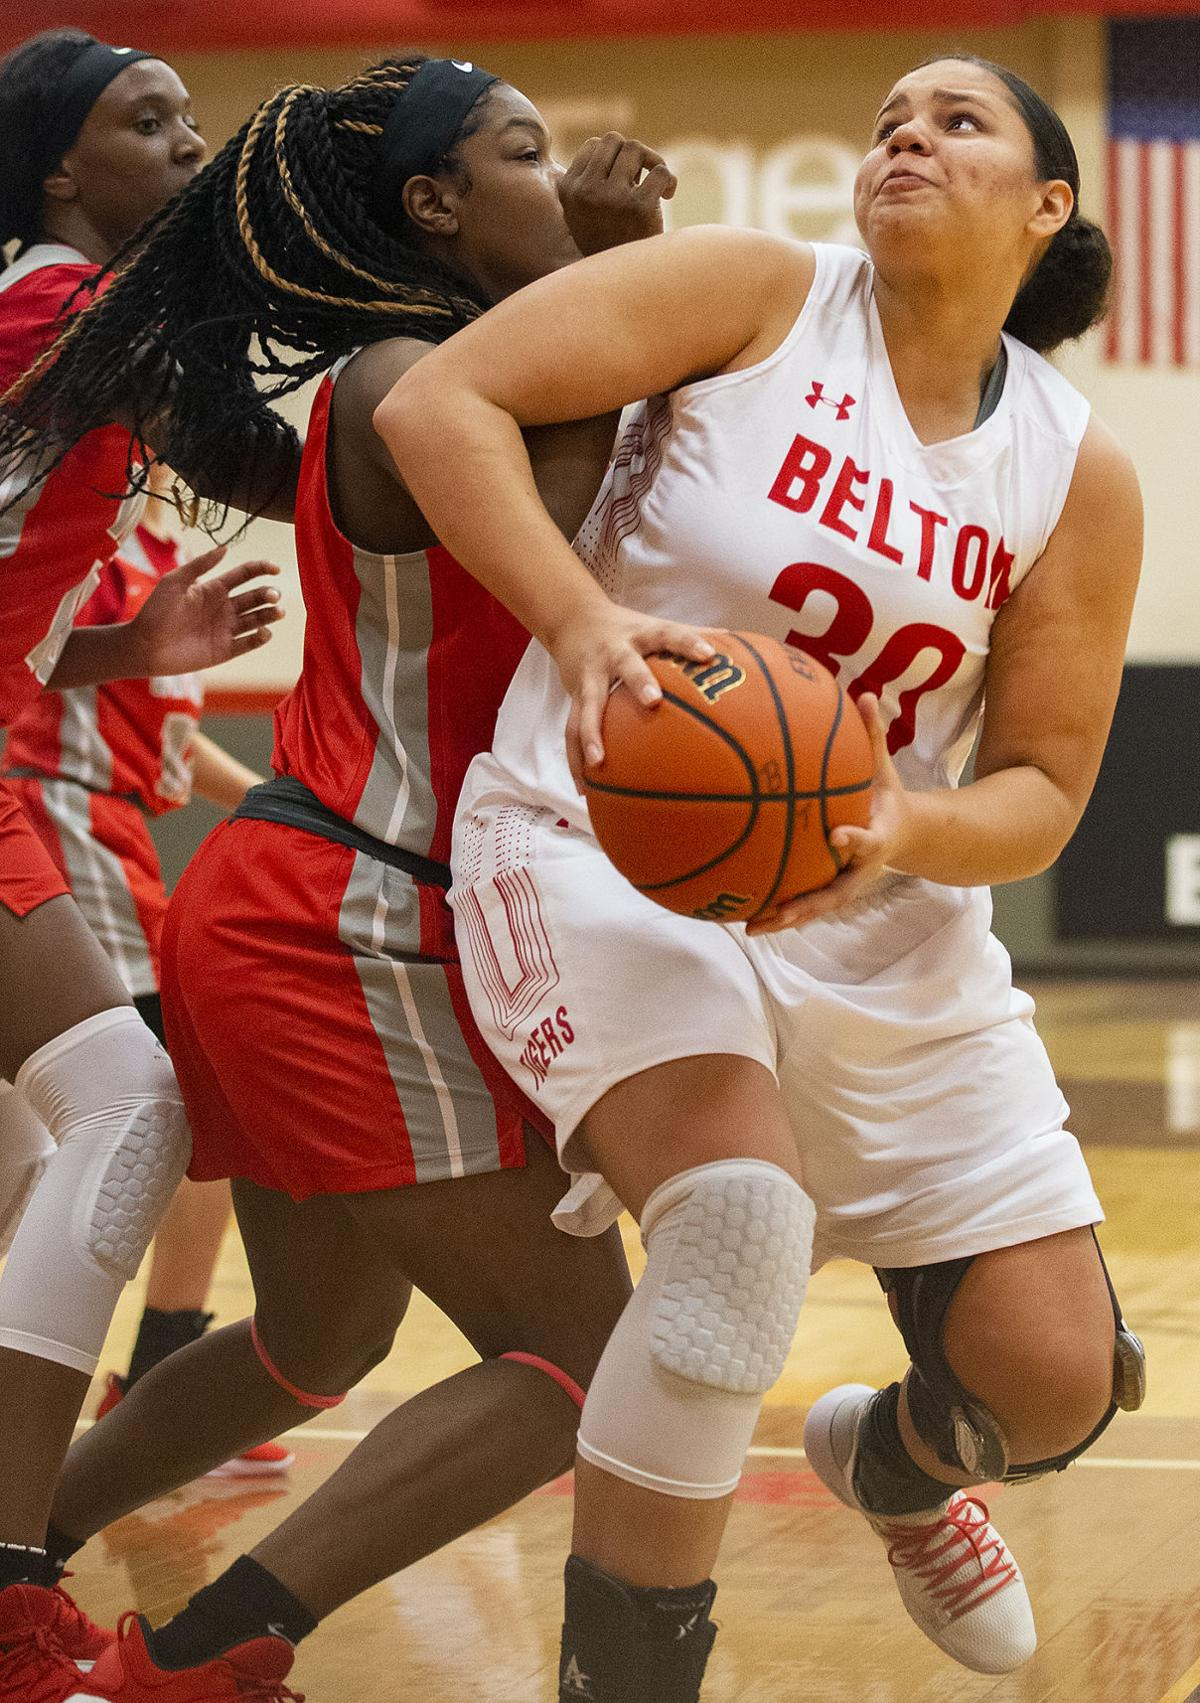 BELTON V WACO girls